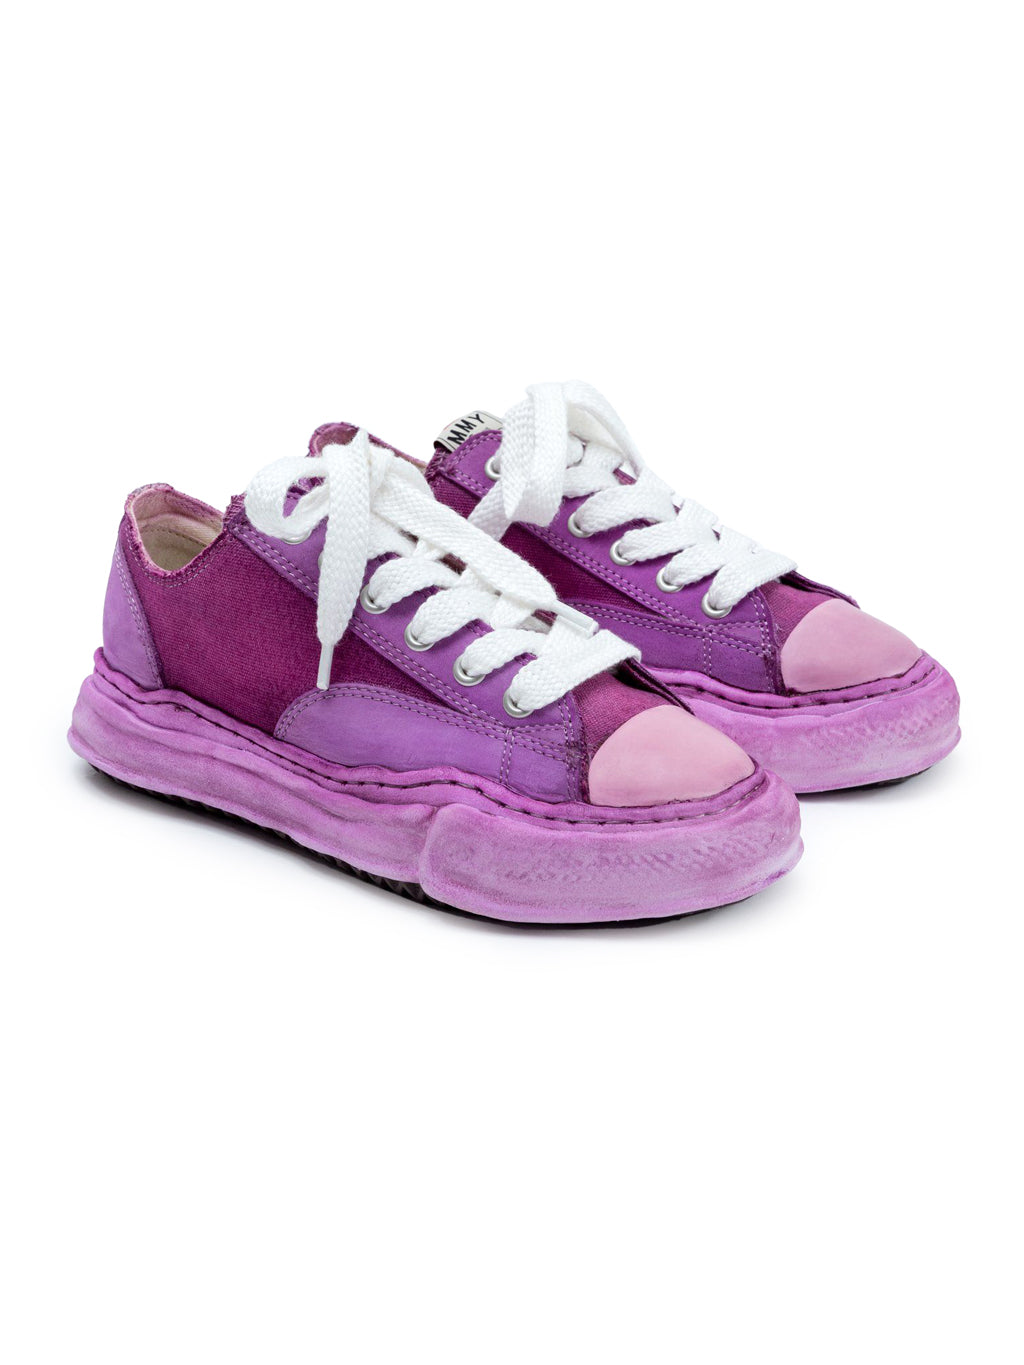 Purple Original Sole Low Cut Sneaker